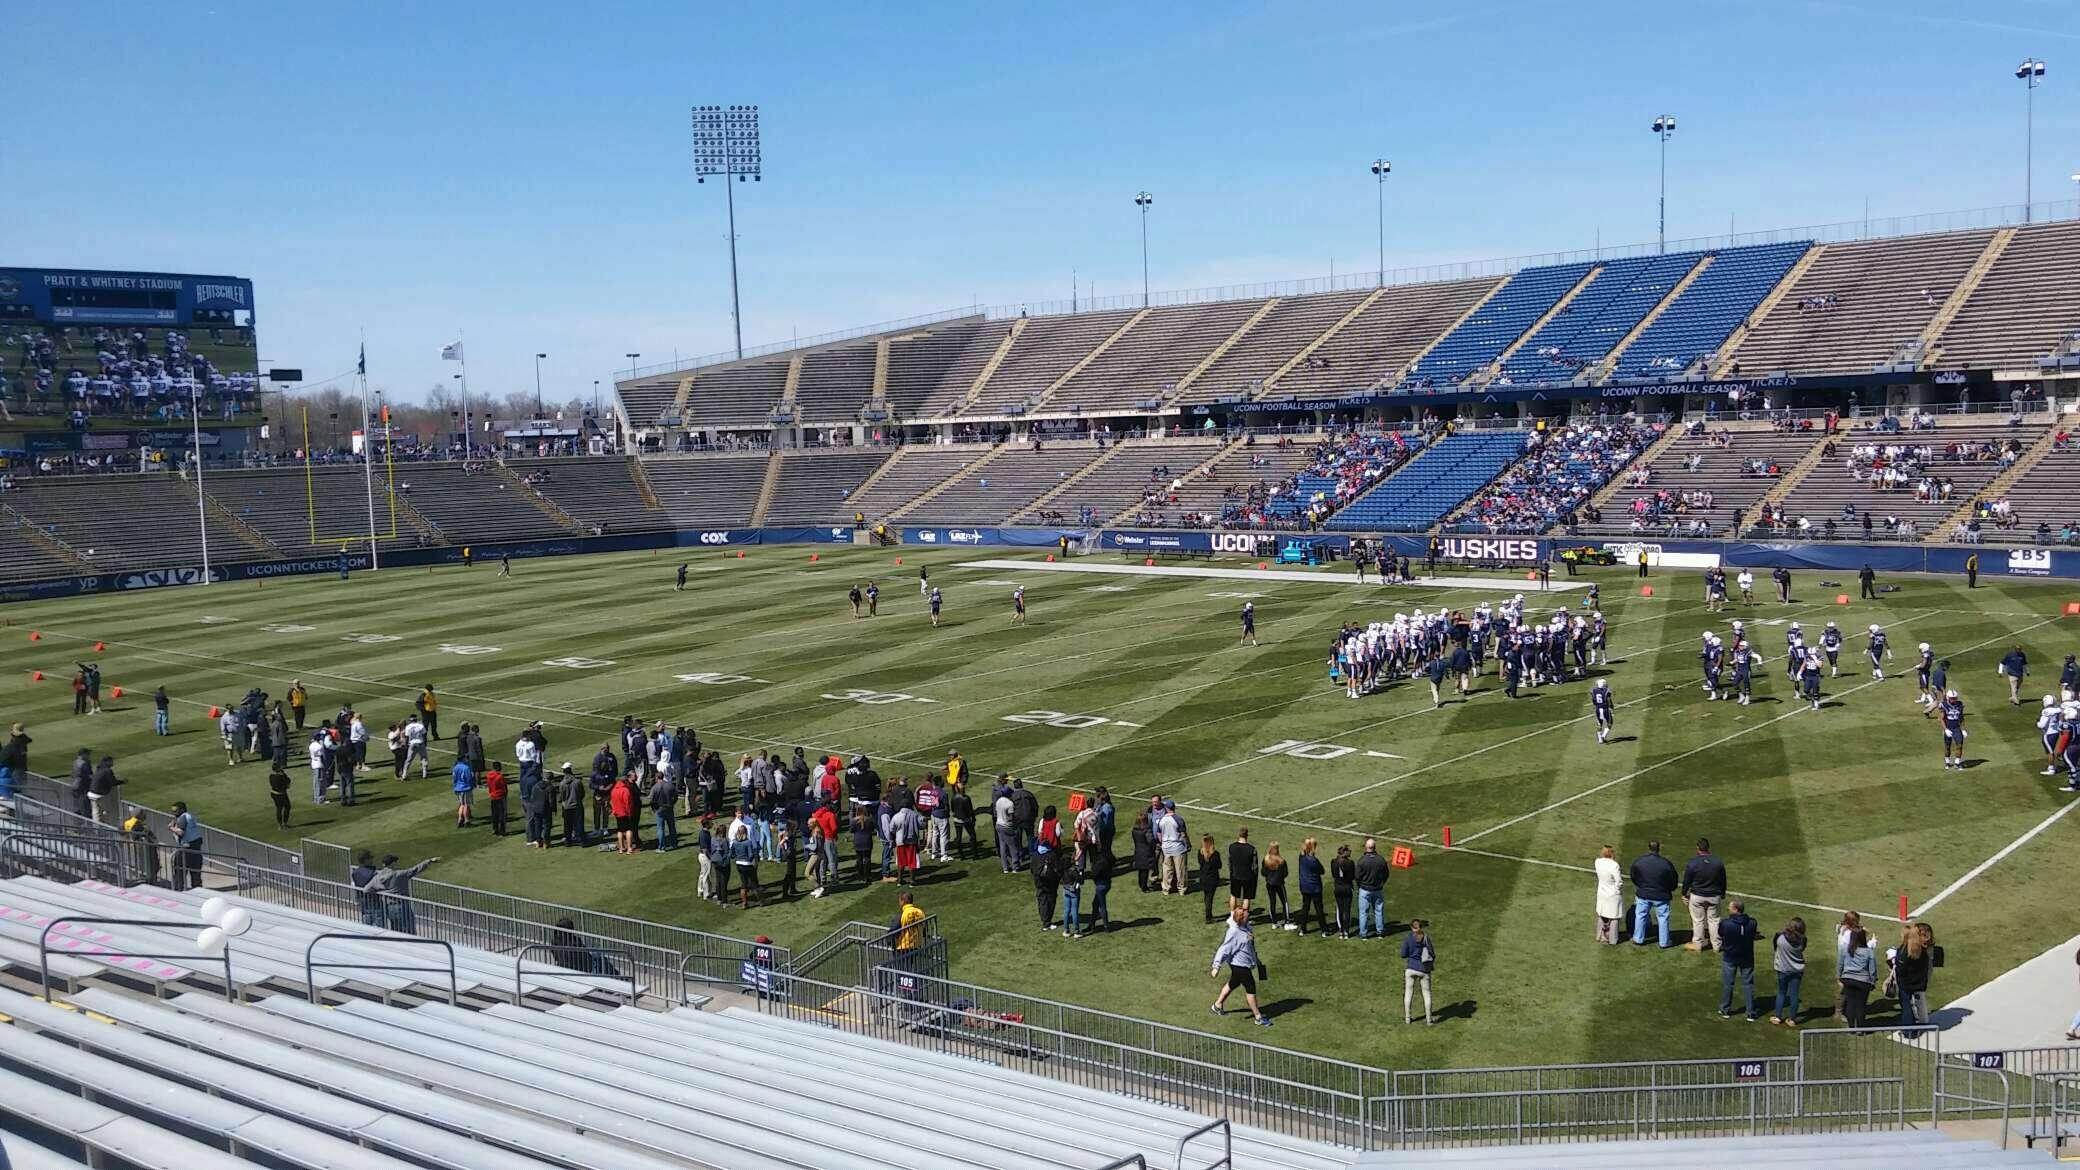 Rentschler Field Section 106 Row handicapped Seat 13